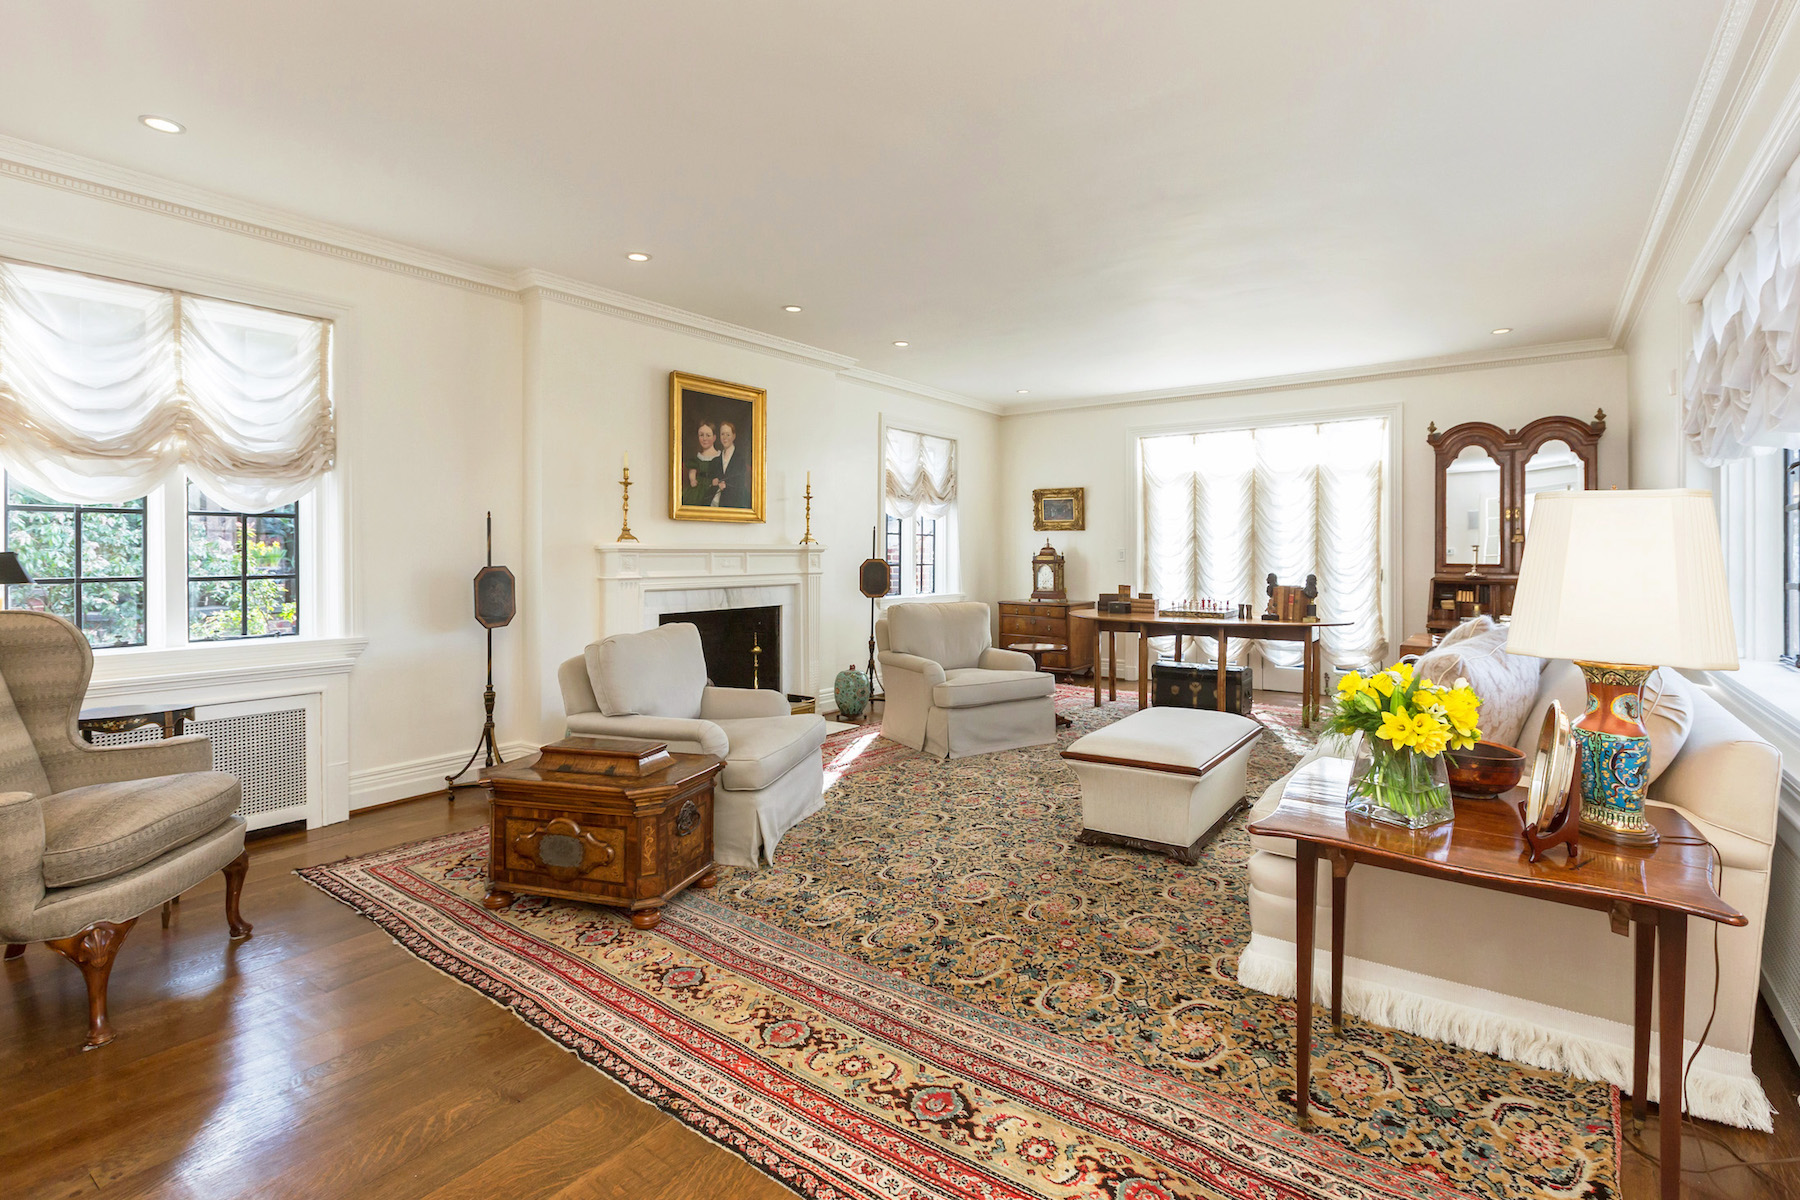 Additional photo for property listing at 2446 Kalorama Rd Nw 2446 Kalorama Rd Nw Washington, District Of Columbia 20008 United States